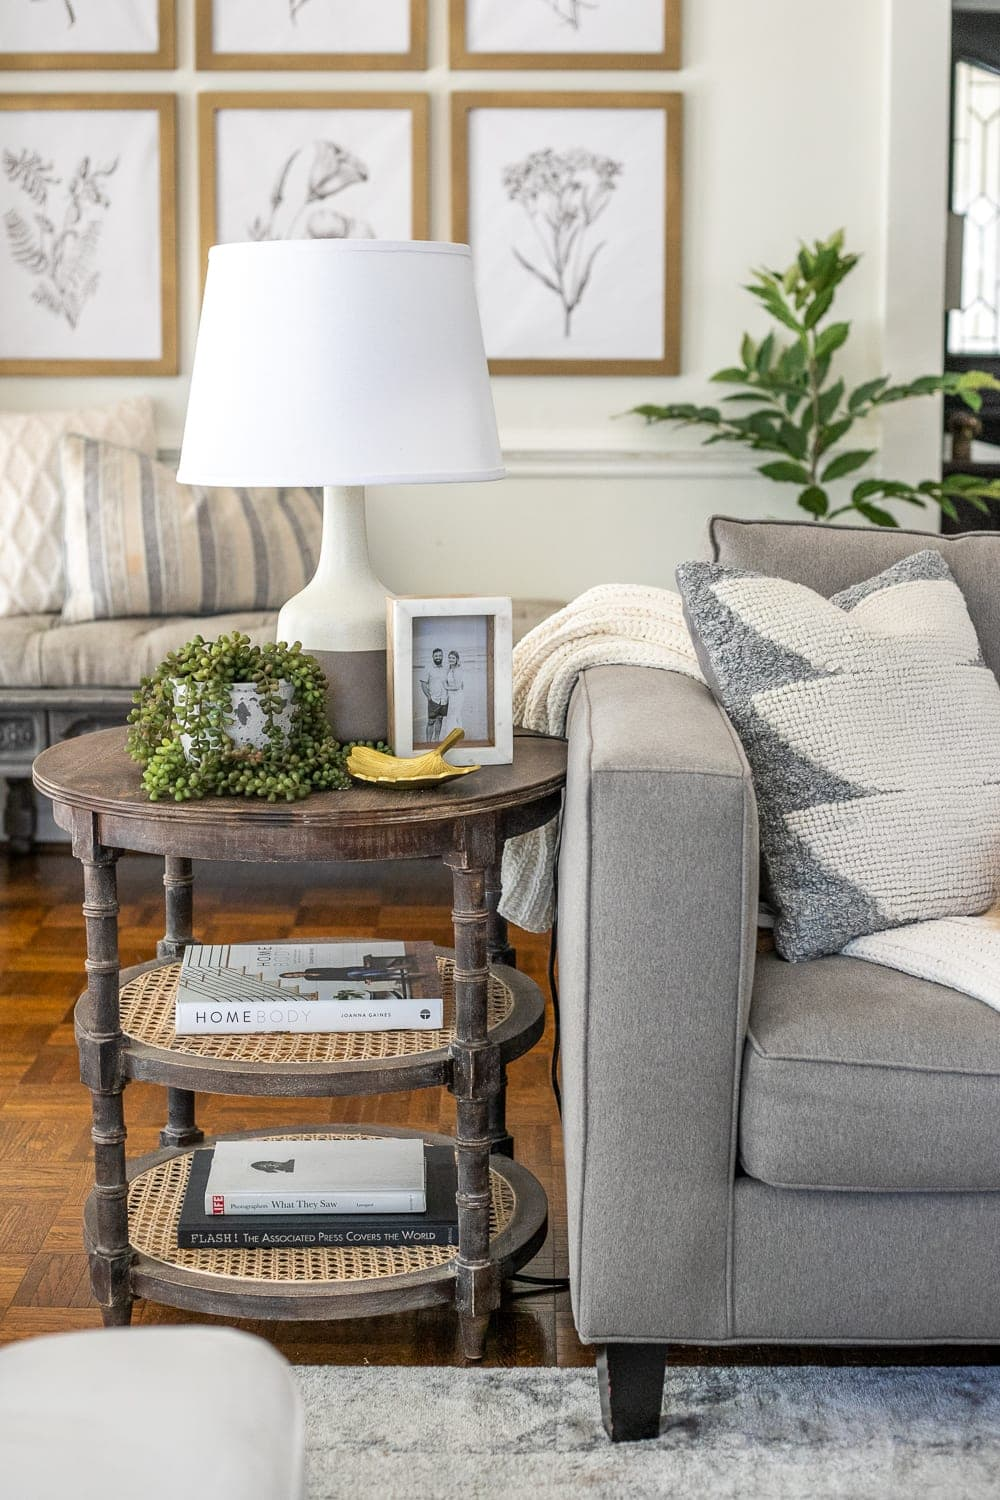 end table decor in a living room